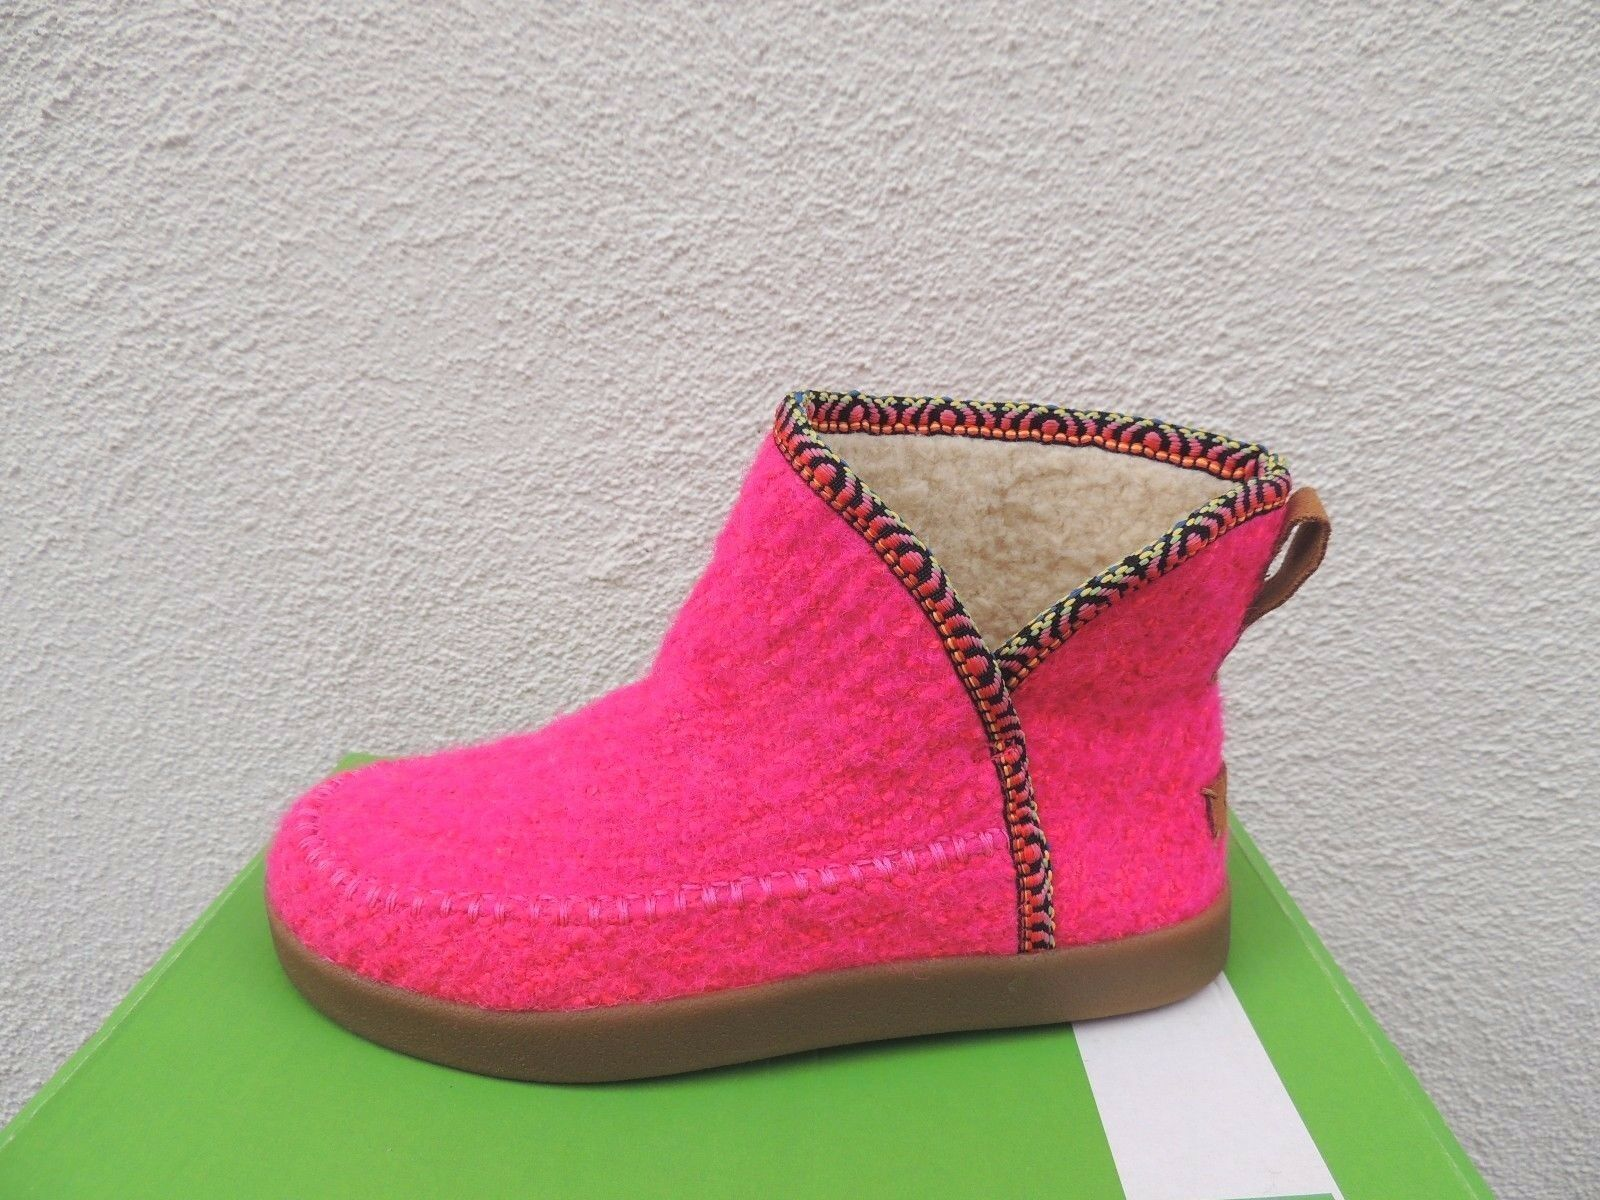 SANUK NICE BOOTAH NEON PINK BOUCLE BOUCLE BOUCLE KNIT FAUX FUR LINED BOOTS, SIZE US 7  38 NEW 2ad999